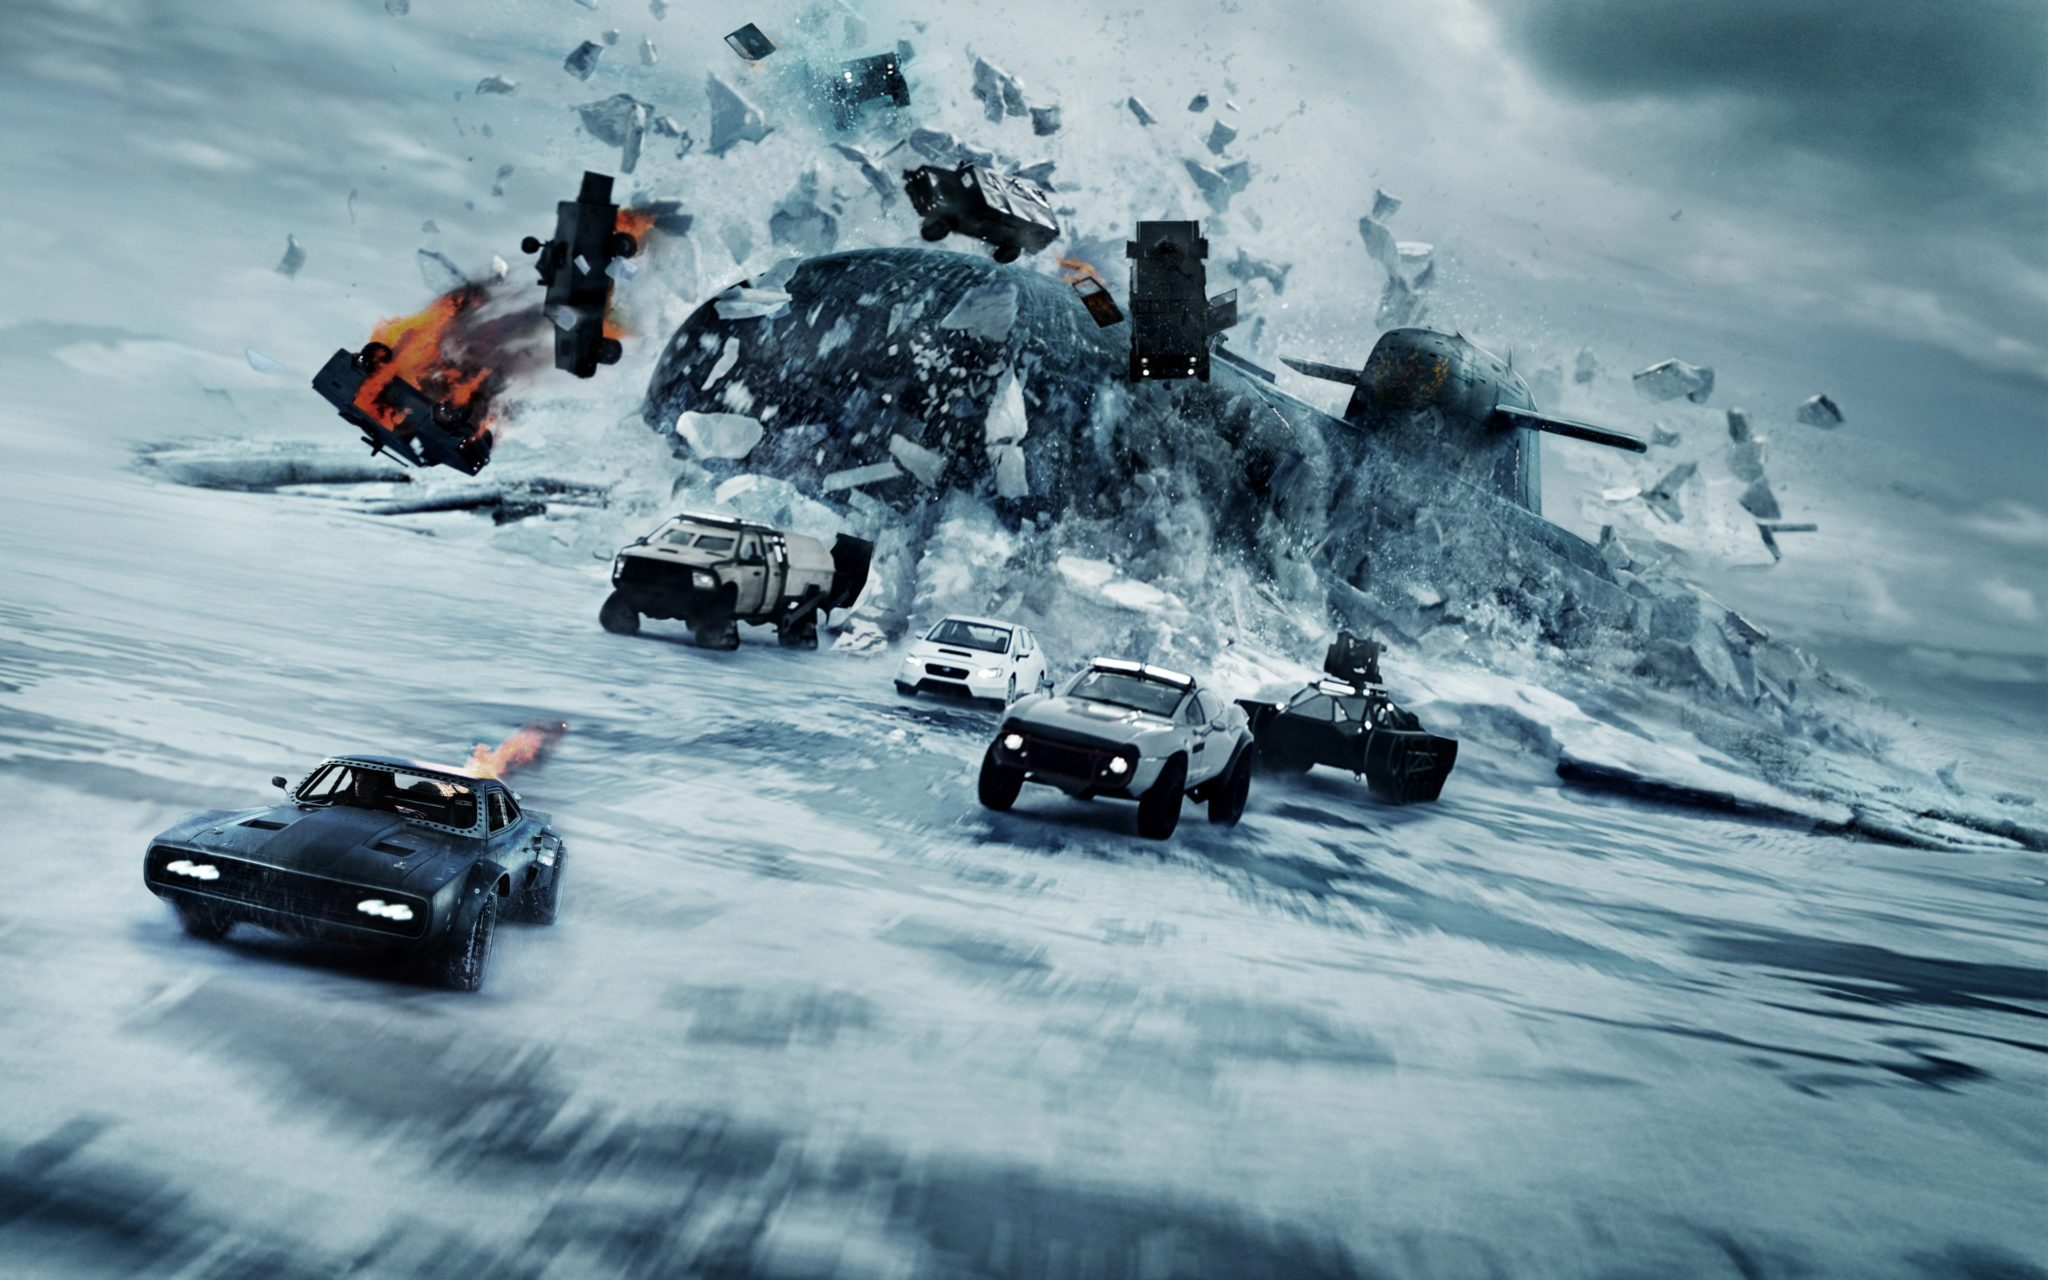 https://cinemaplanet.pt/wp-content/uploads/2017/07/The-Fate-of-The-Furious-4K.jpg